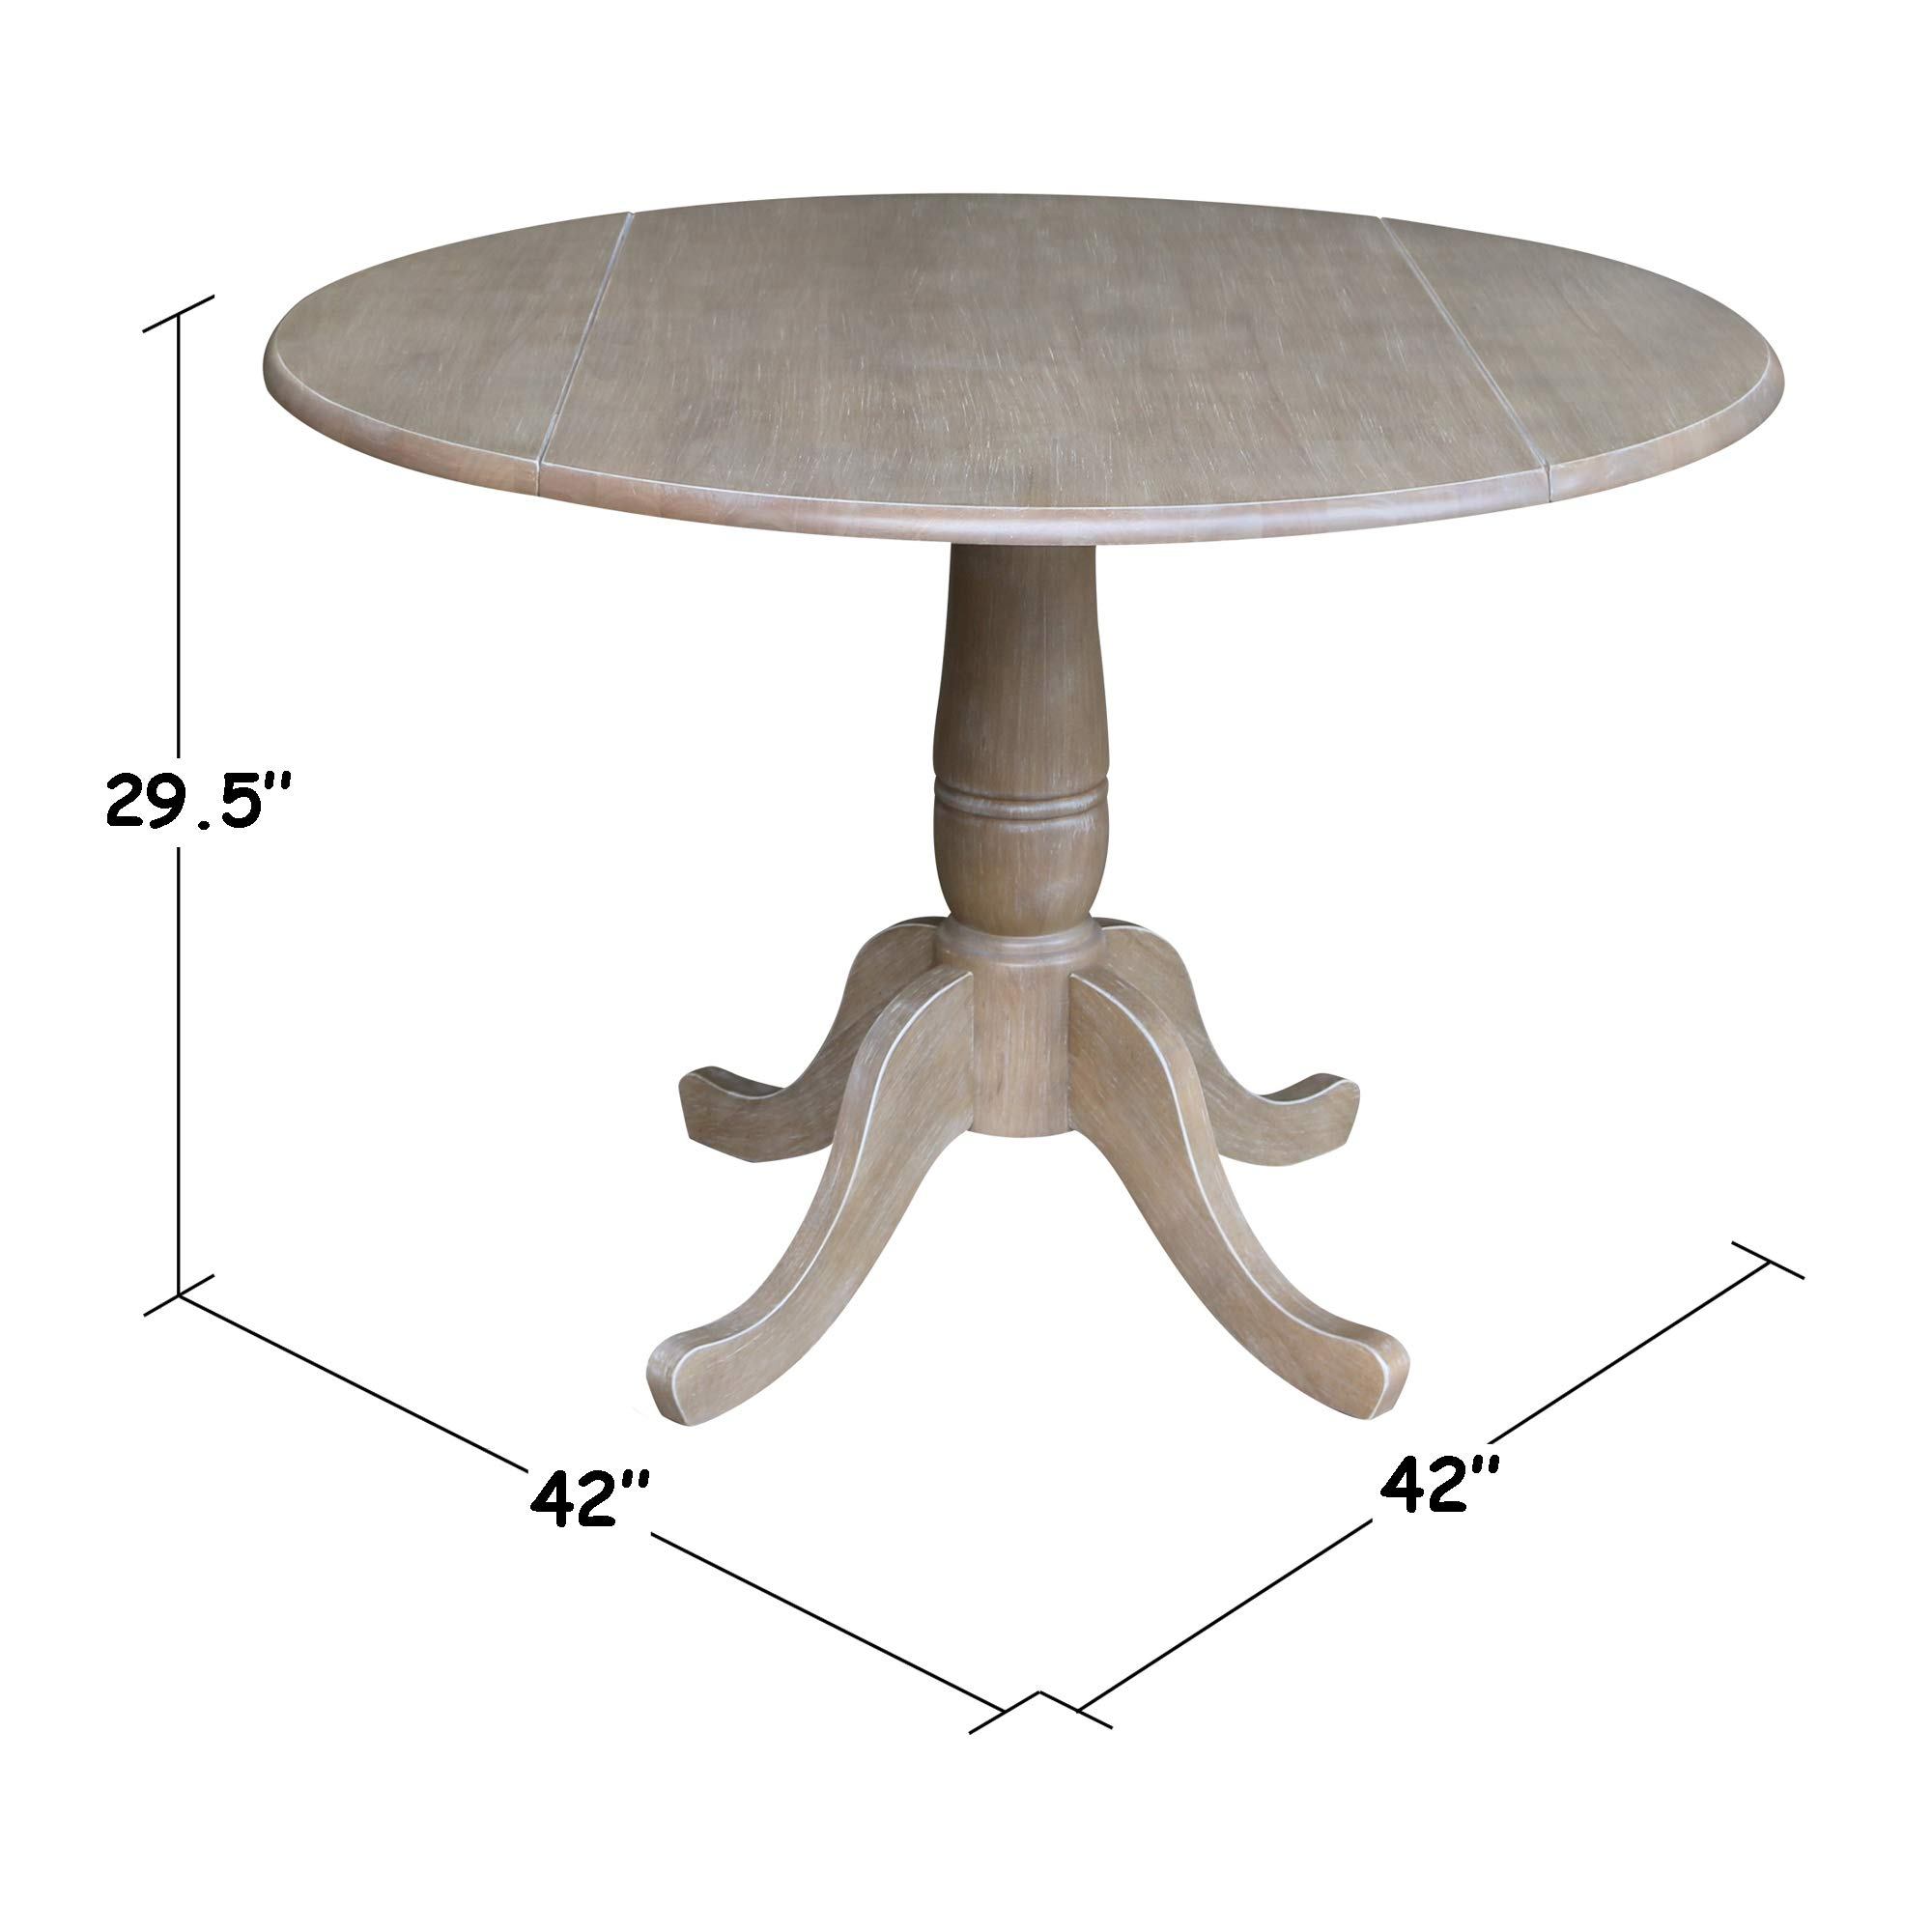 International Concepts 42'' Round Dual Drop Leaf Pedestal Table-29.5'' H Dining Table, Washed Gray Taupe by International Concepts